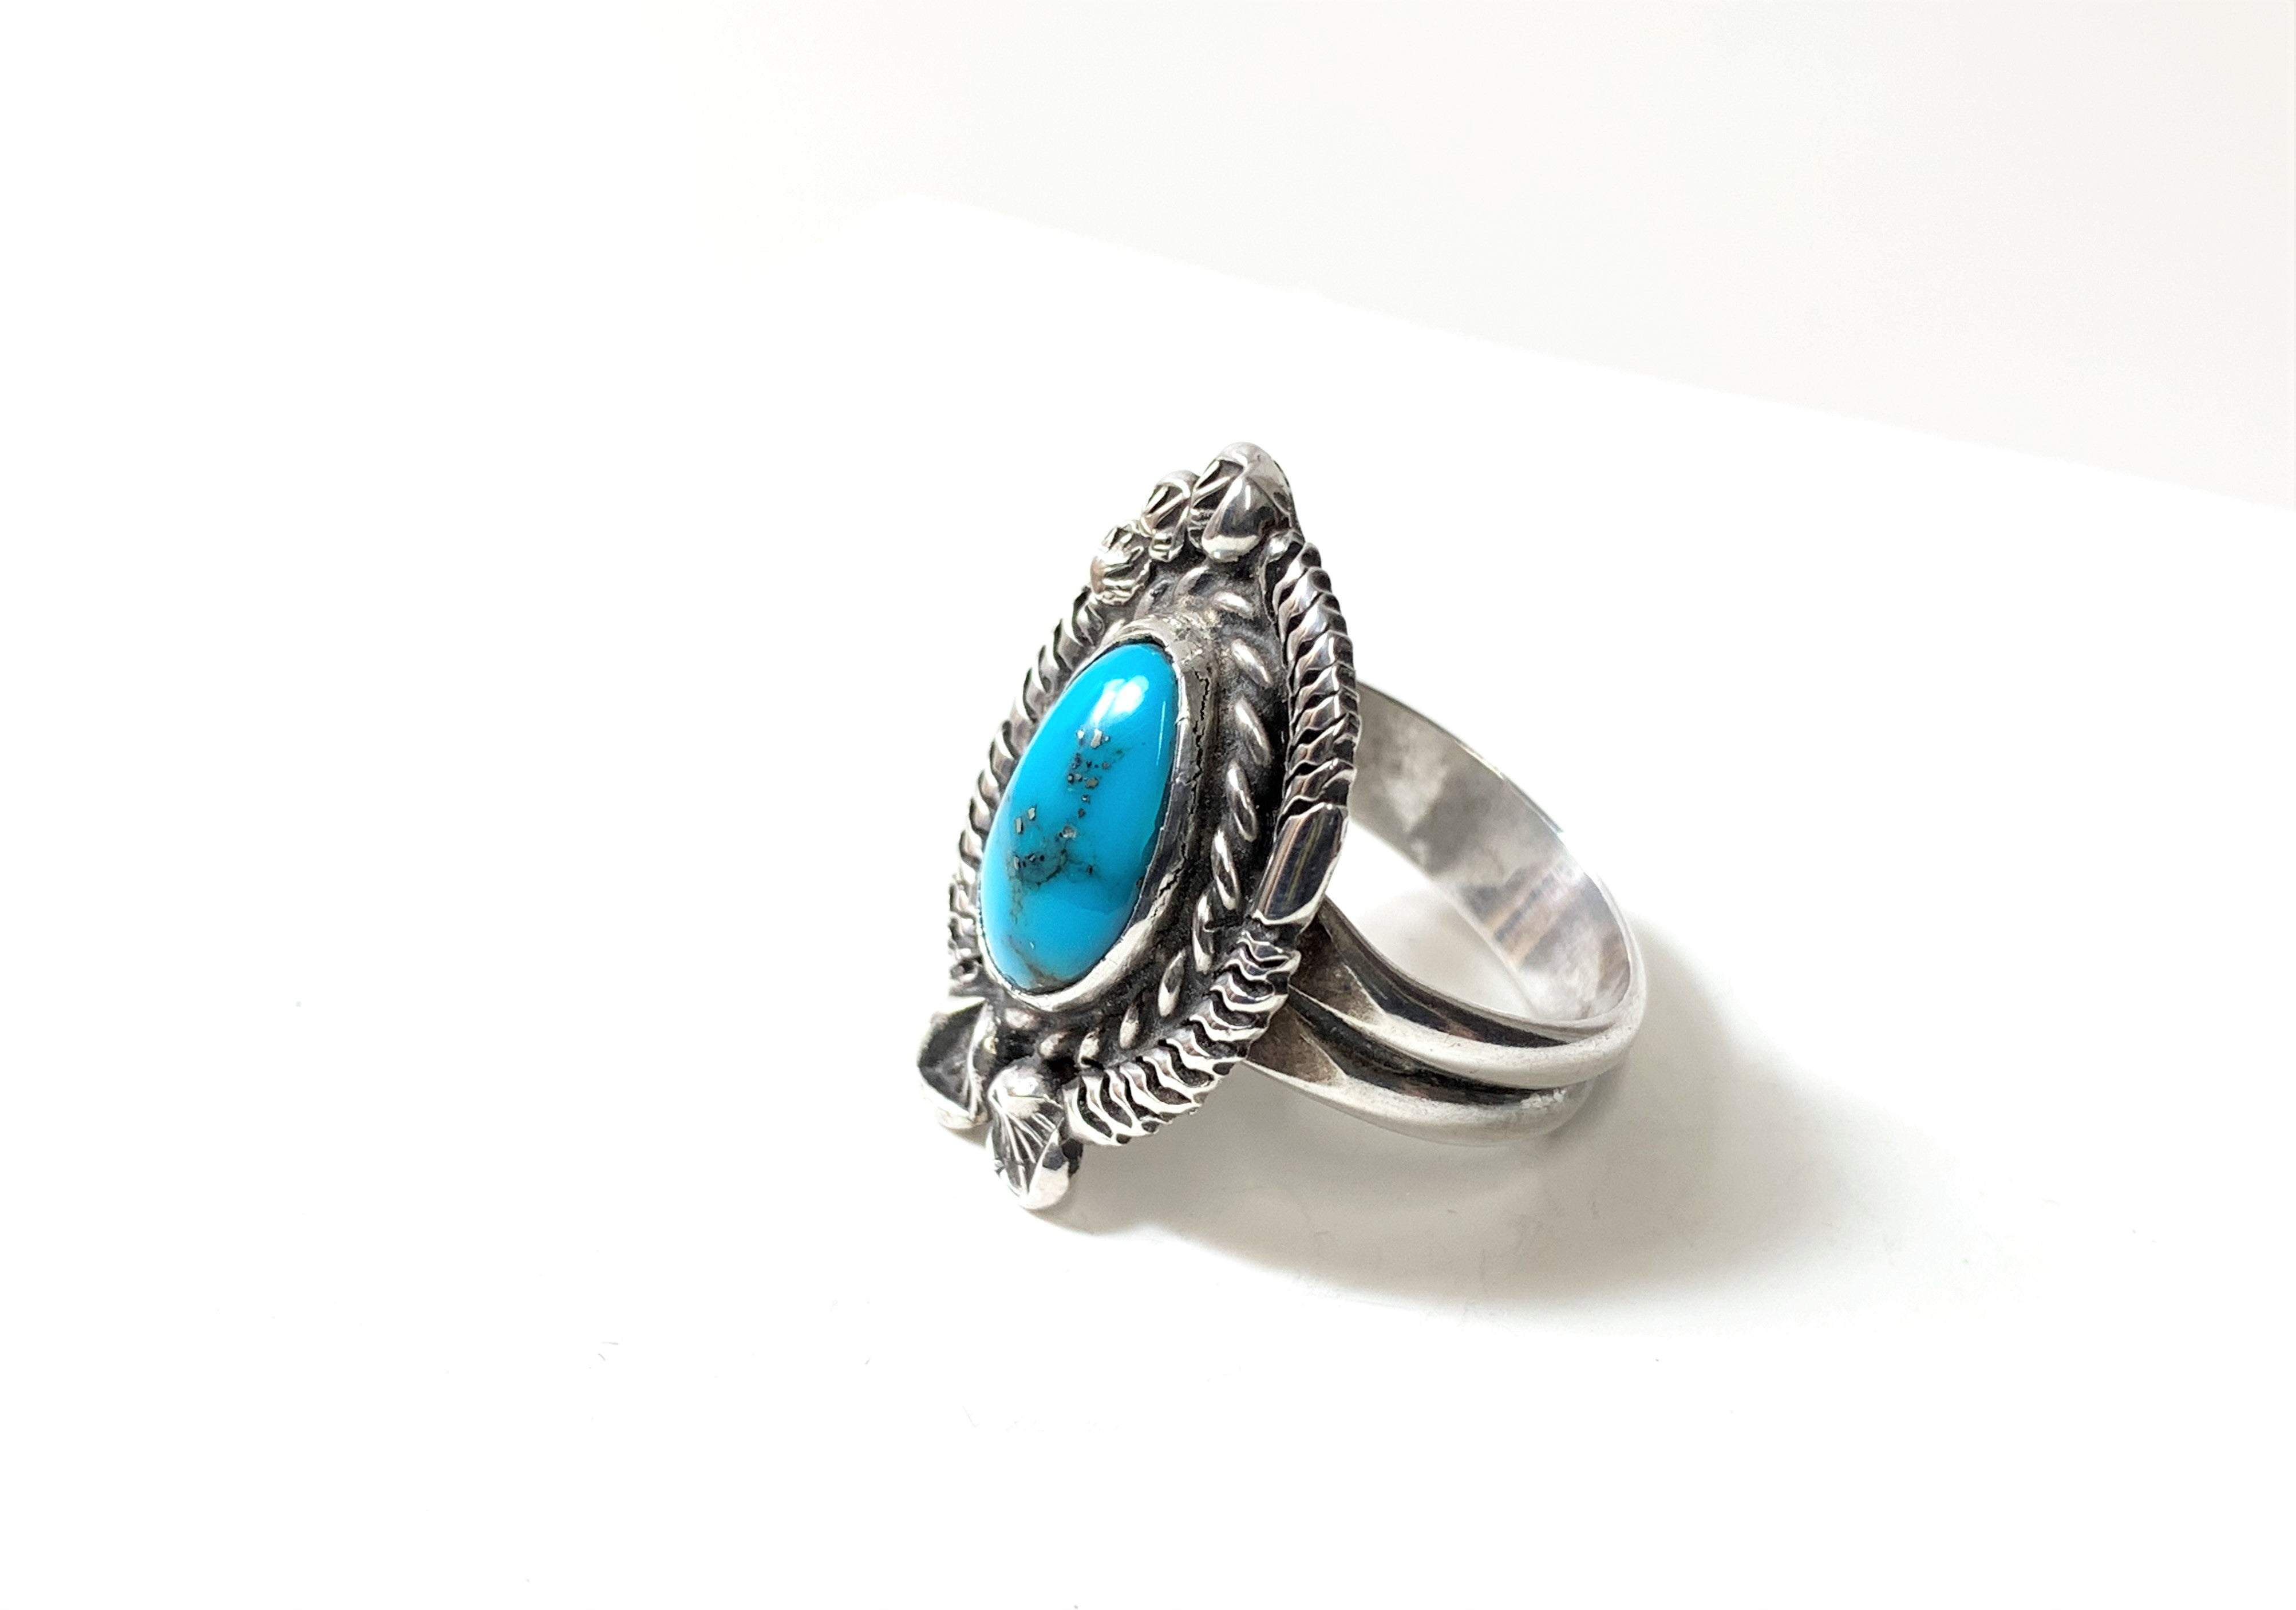 NATIVE ROSE TURQUOISE RING